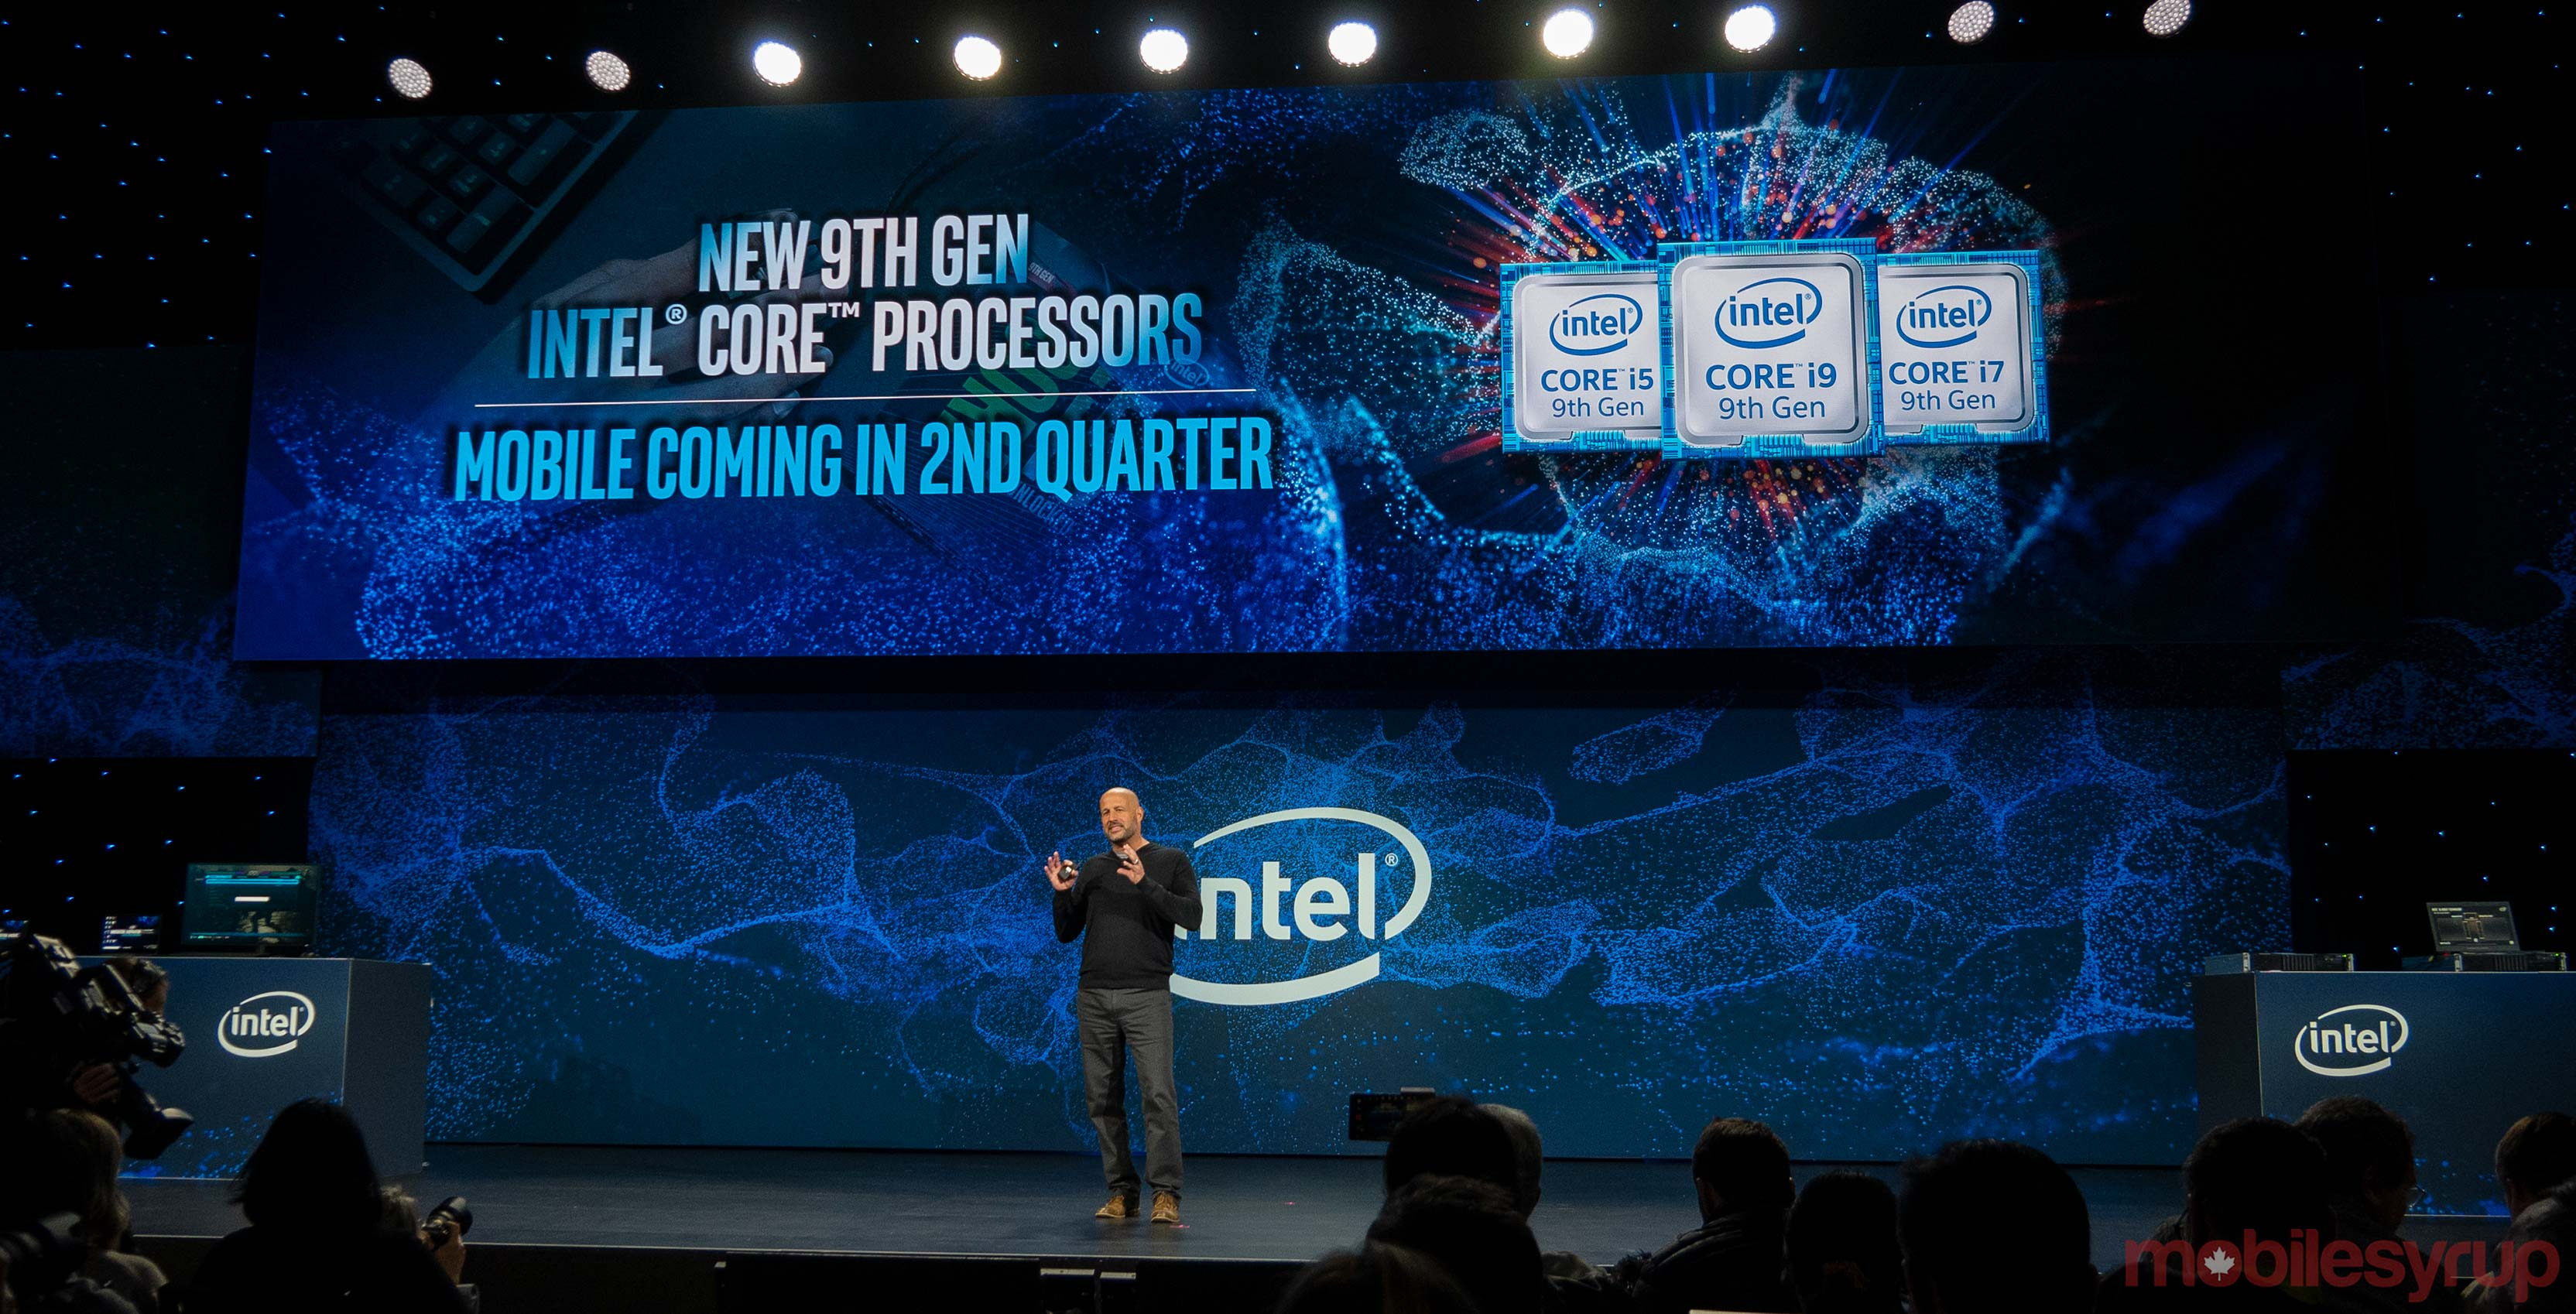 Intel's 9th Gen Core processors headed to laptops in Q2 2019